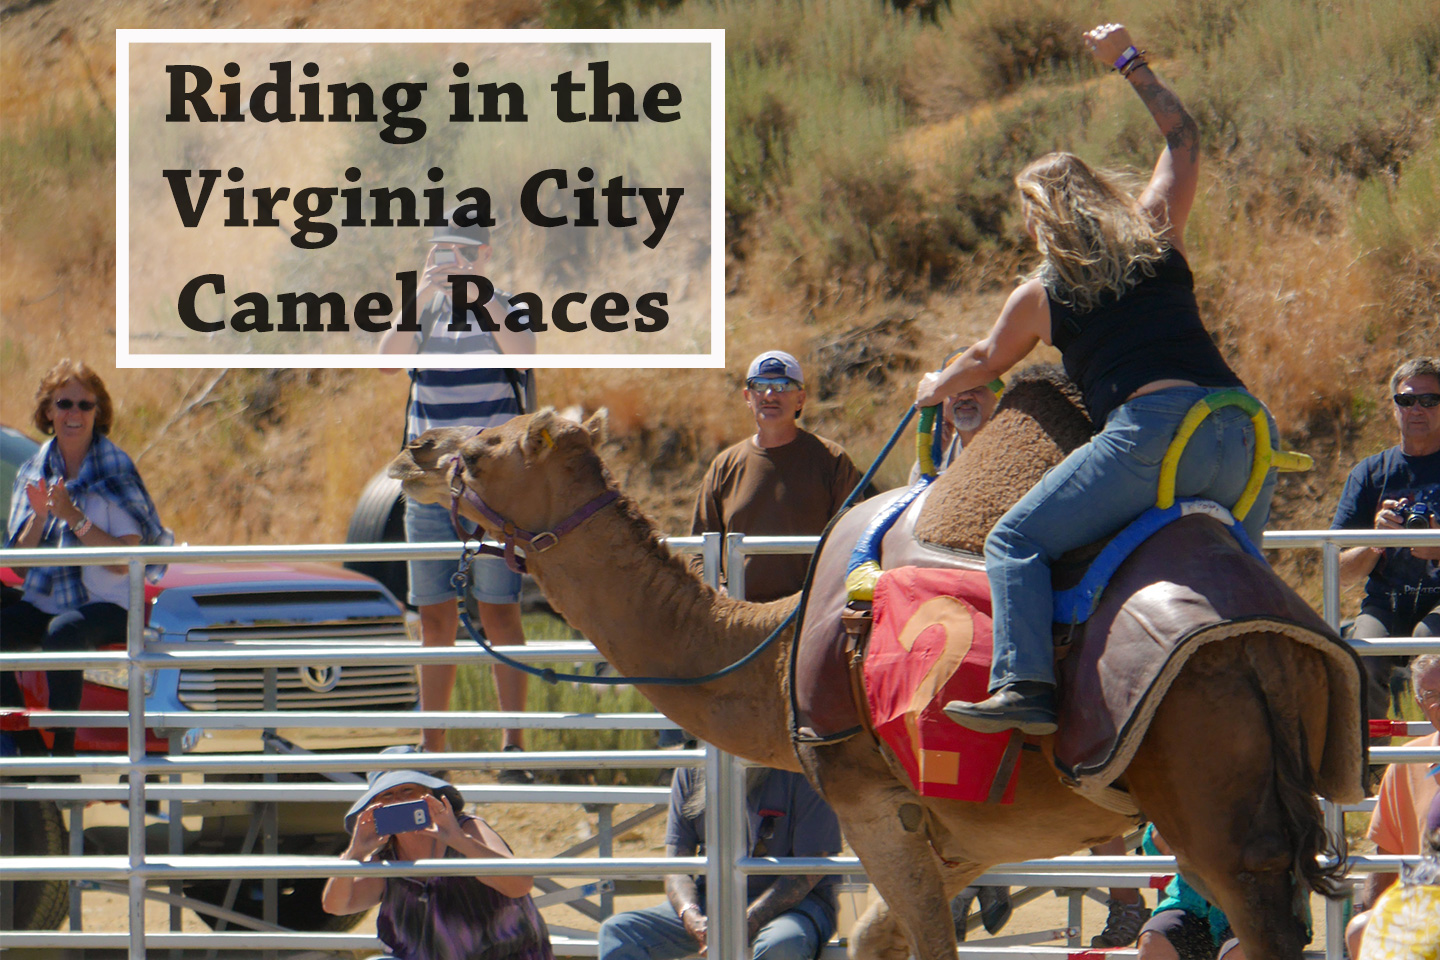 virginia city camel race - val in real life